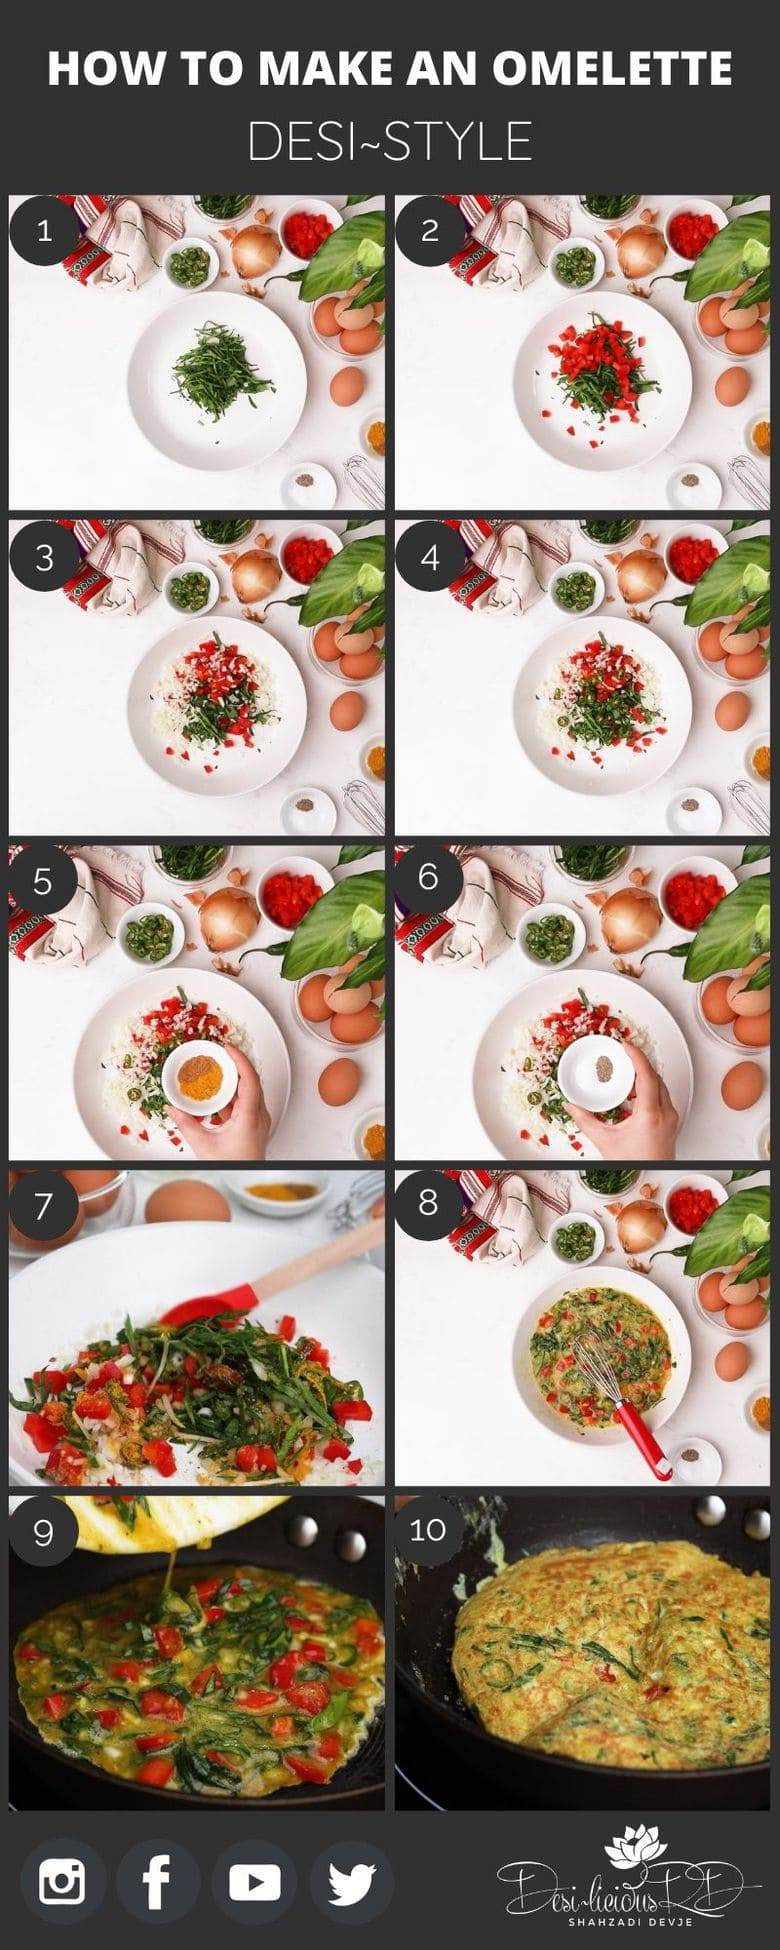 step by step preparation shots of how to make an omelette - desi~style in a pan